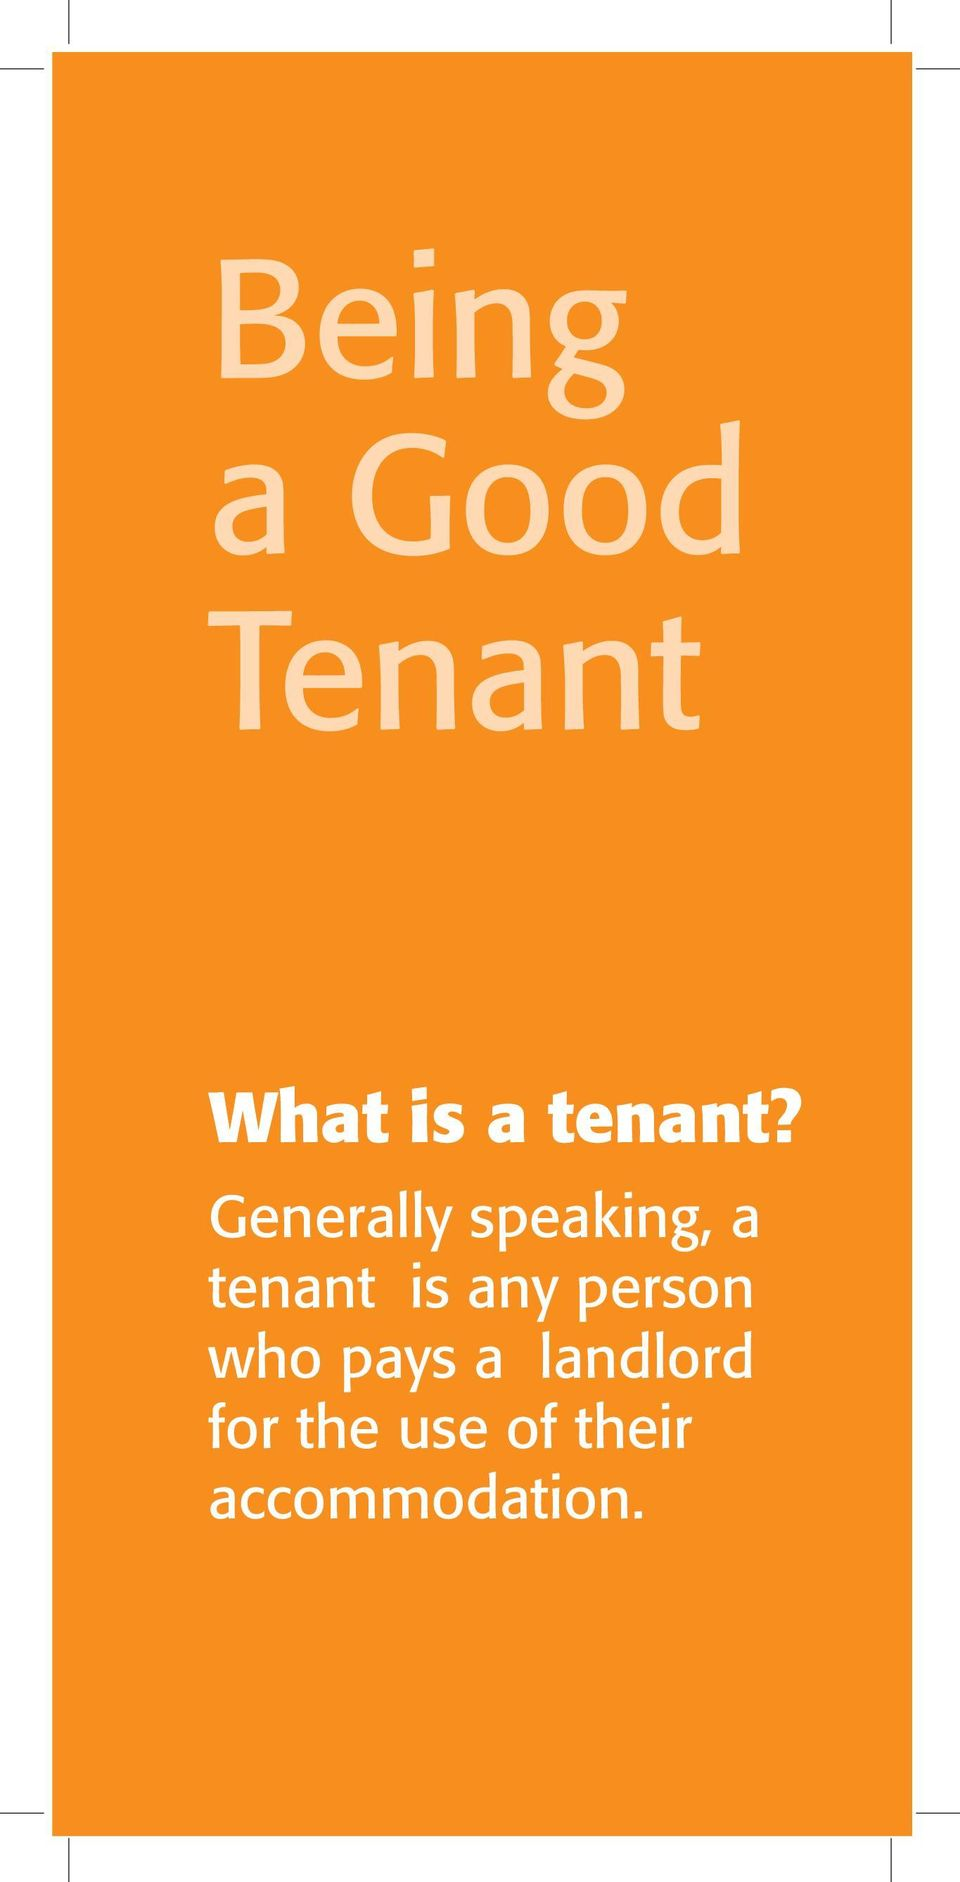 Generally speaking, a tenant is